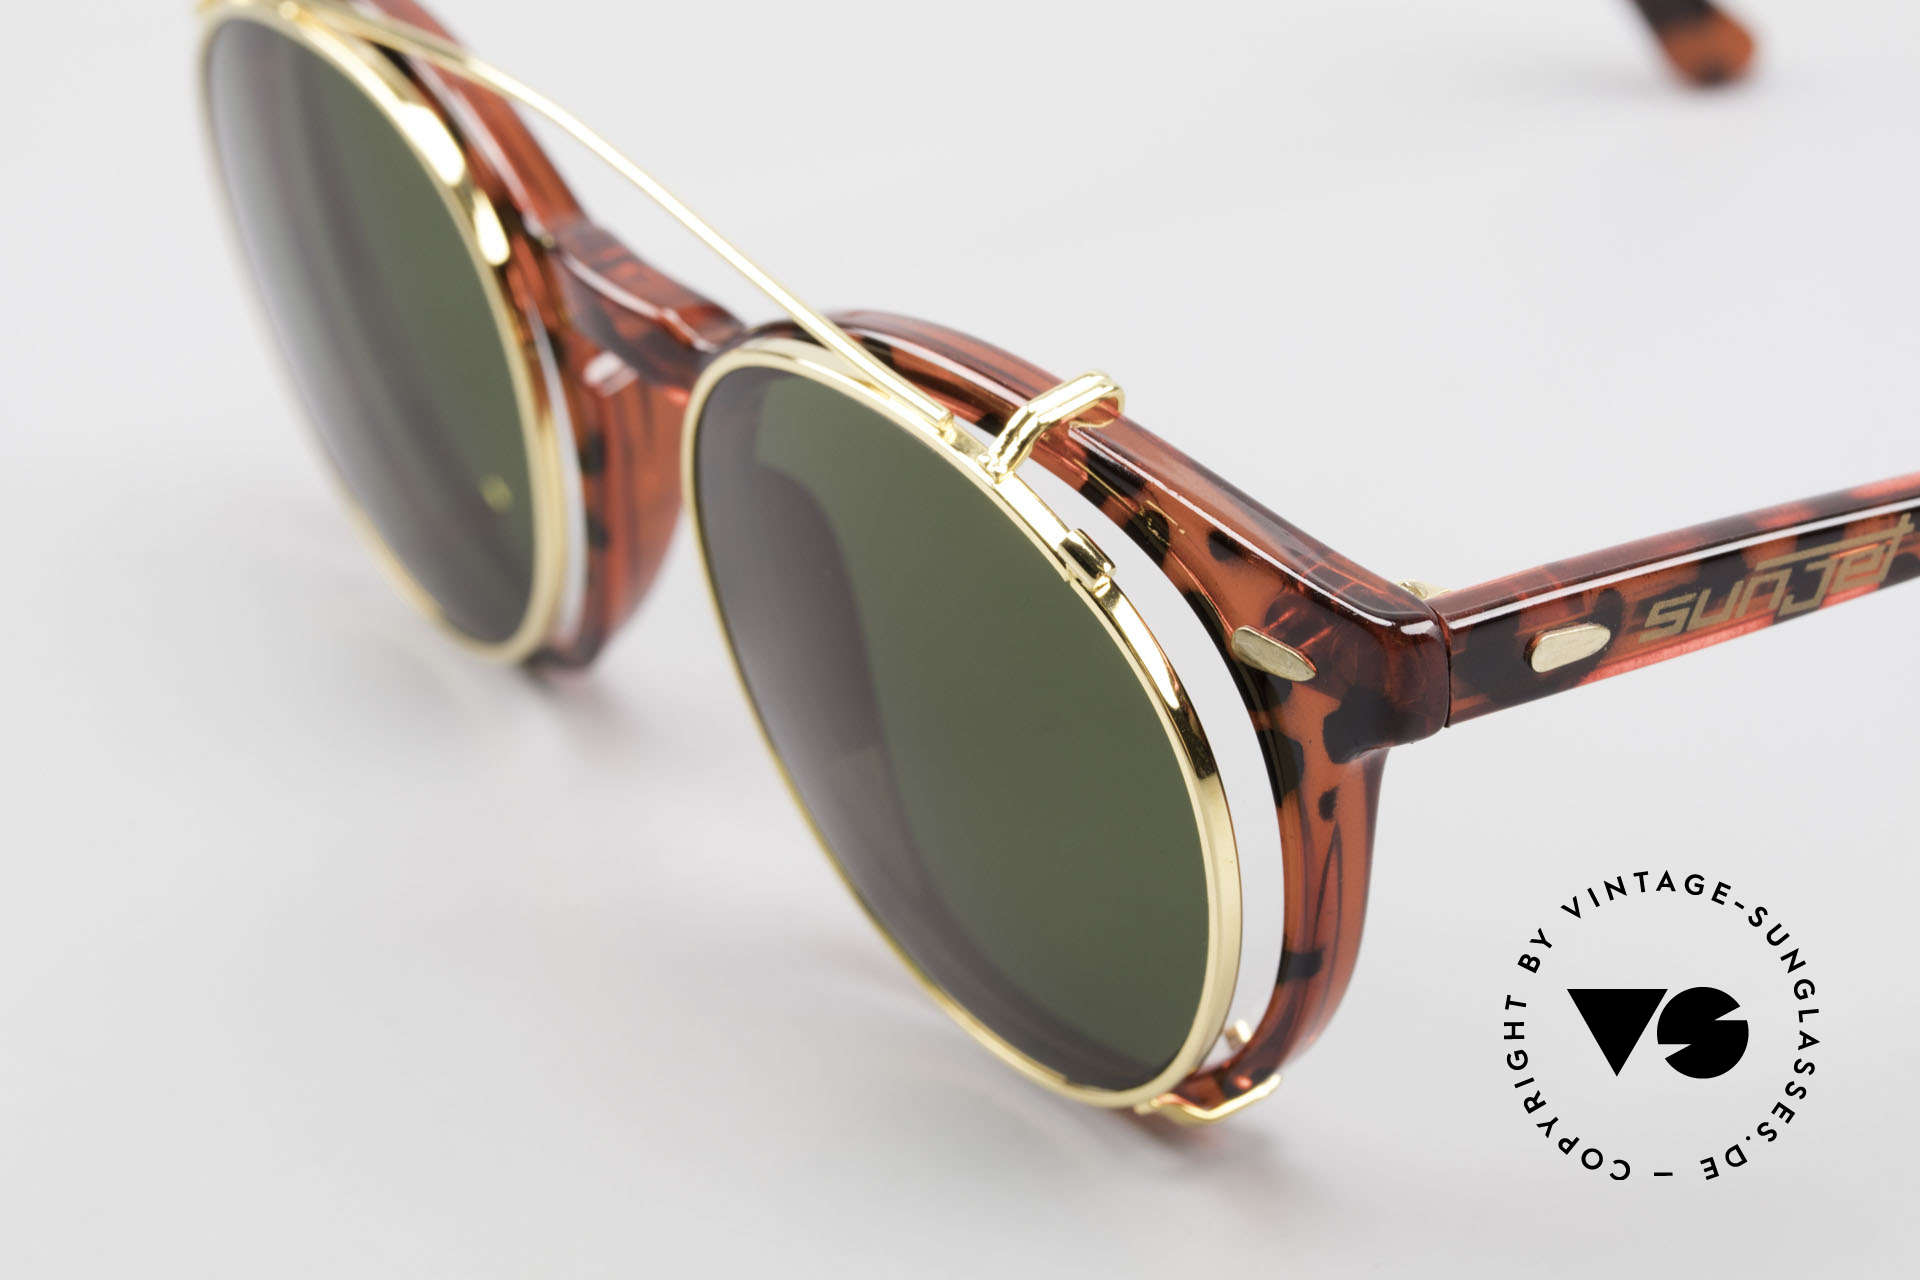 Carrera 5256 Clip Panto Frame Johnny Depp Style, the actor Johnny Depp made this panto style popular, Made for Men and Women